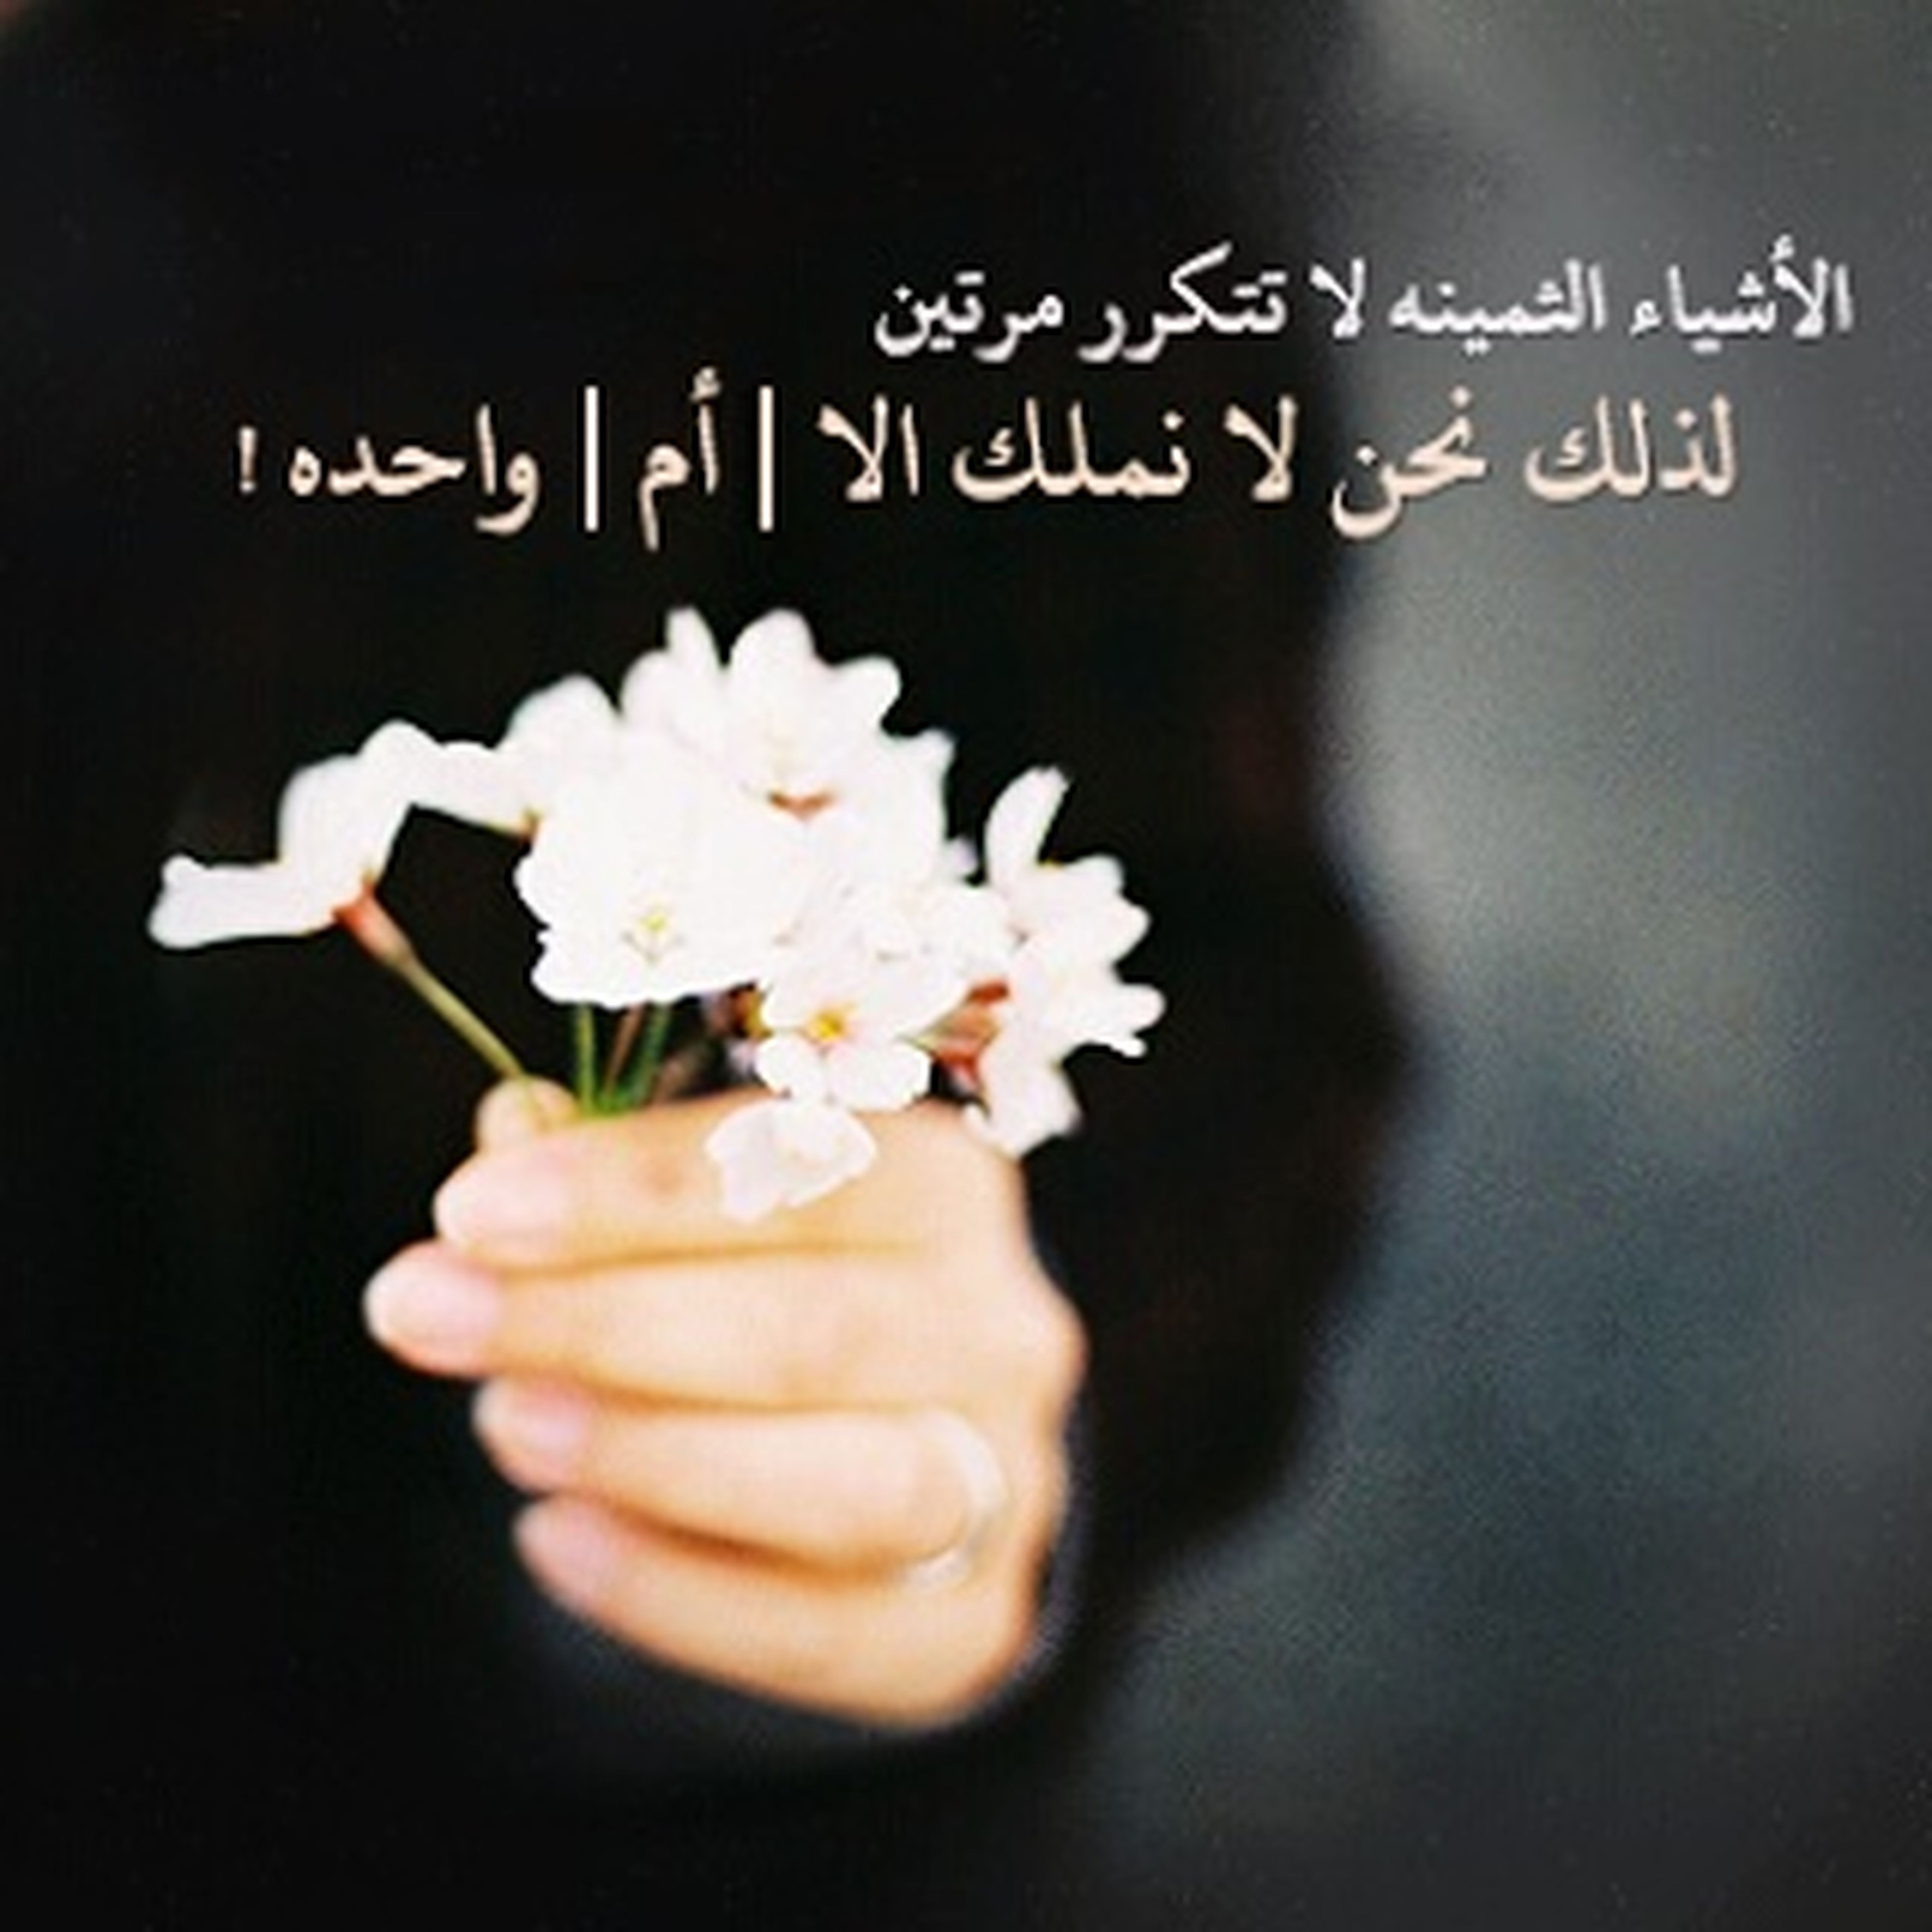 flower, freshness, person, close-up, white color, holding, indoors, one person, petal, focus on foreground, flower head, fragility, text, white, black background, studio shot, part of, western script, human finger